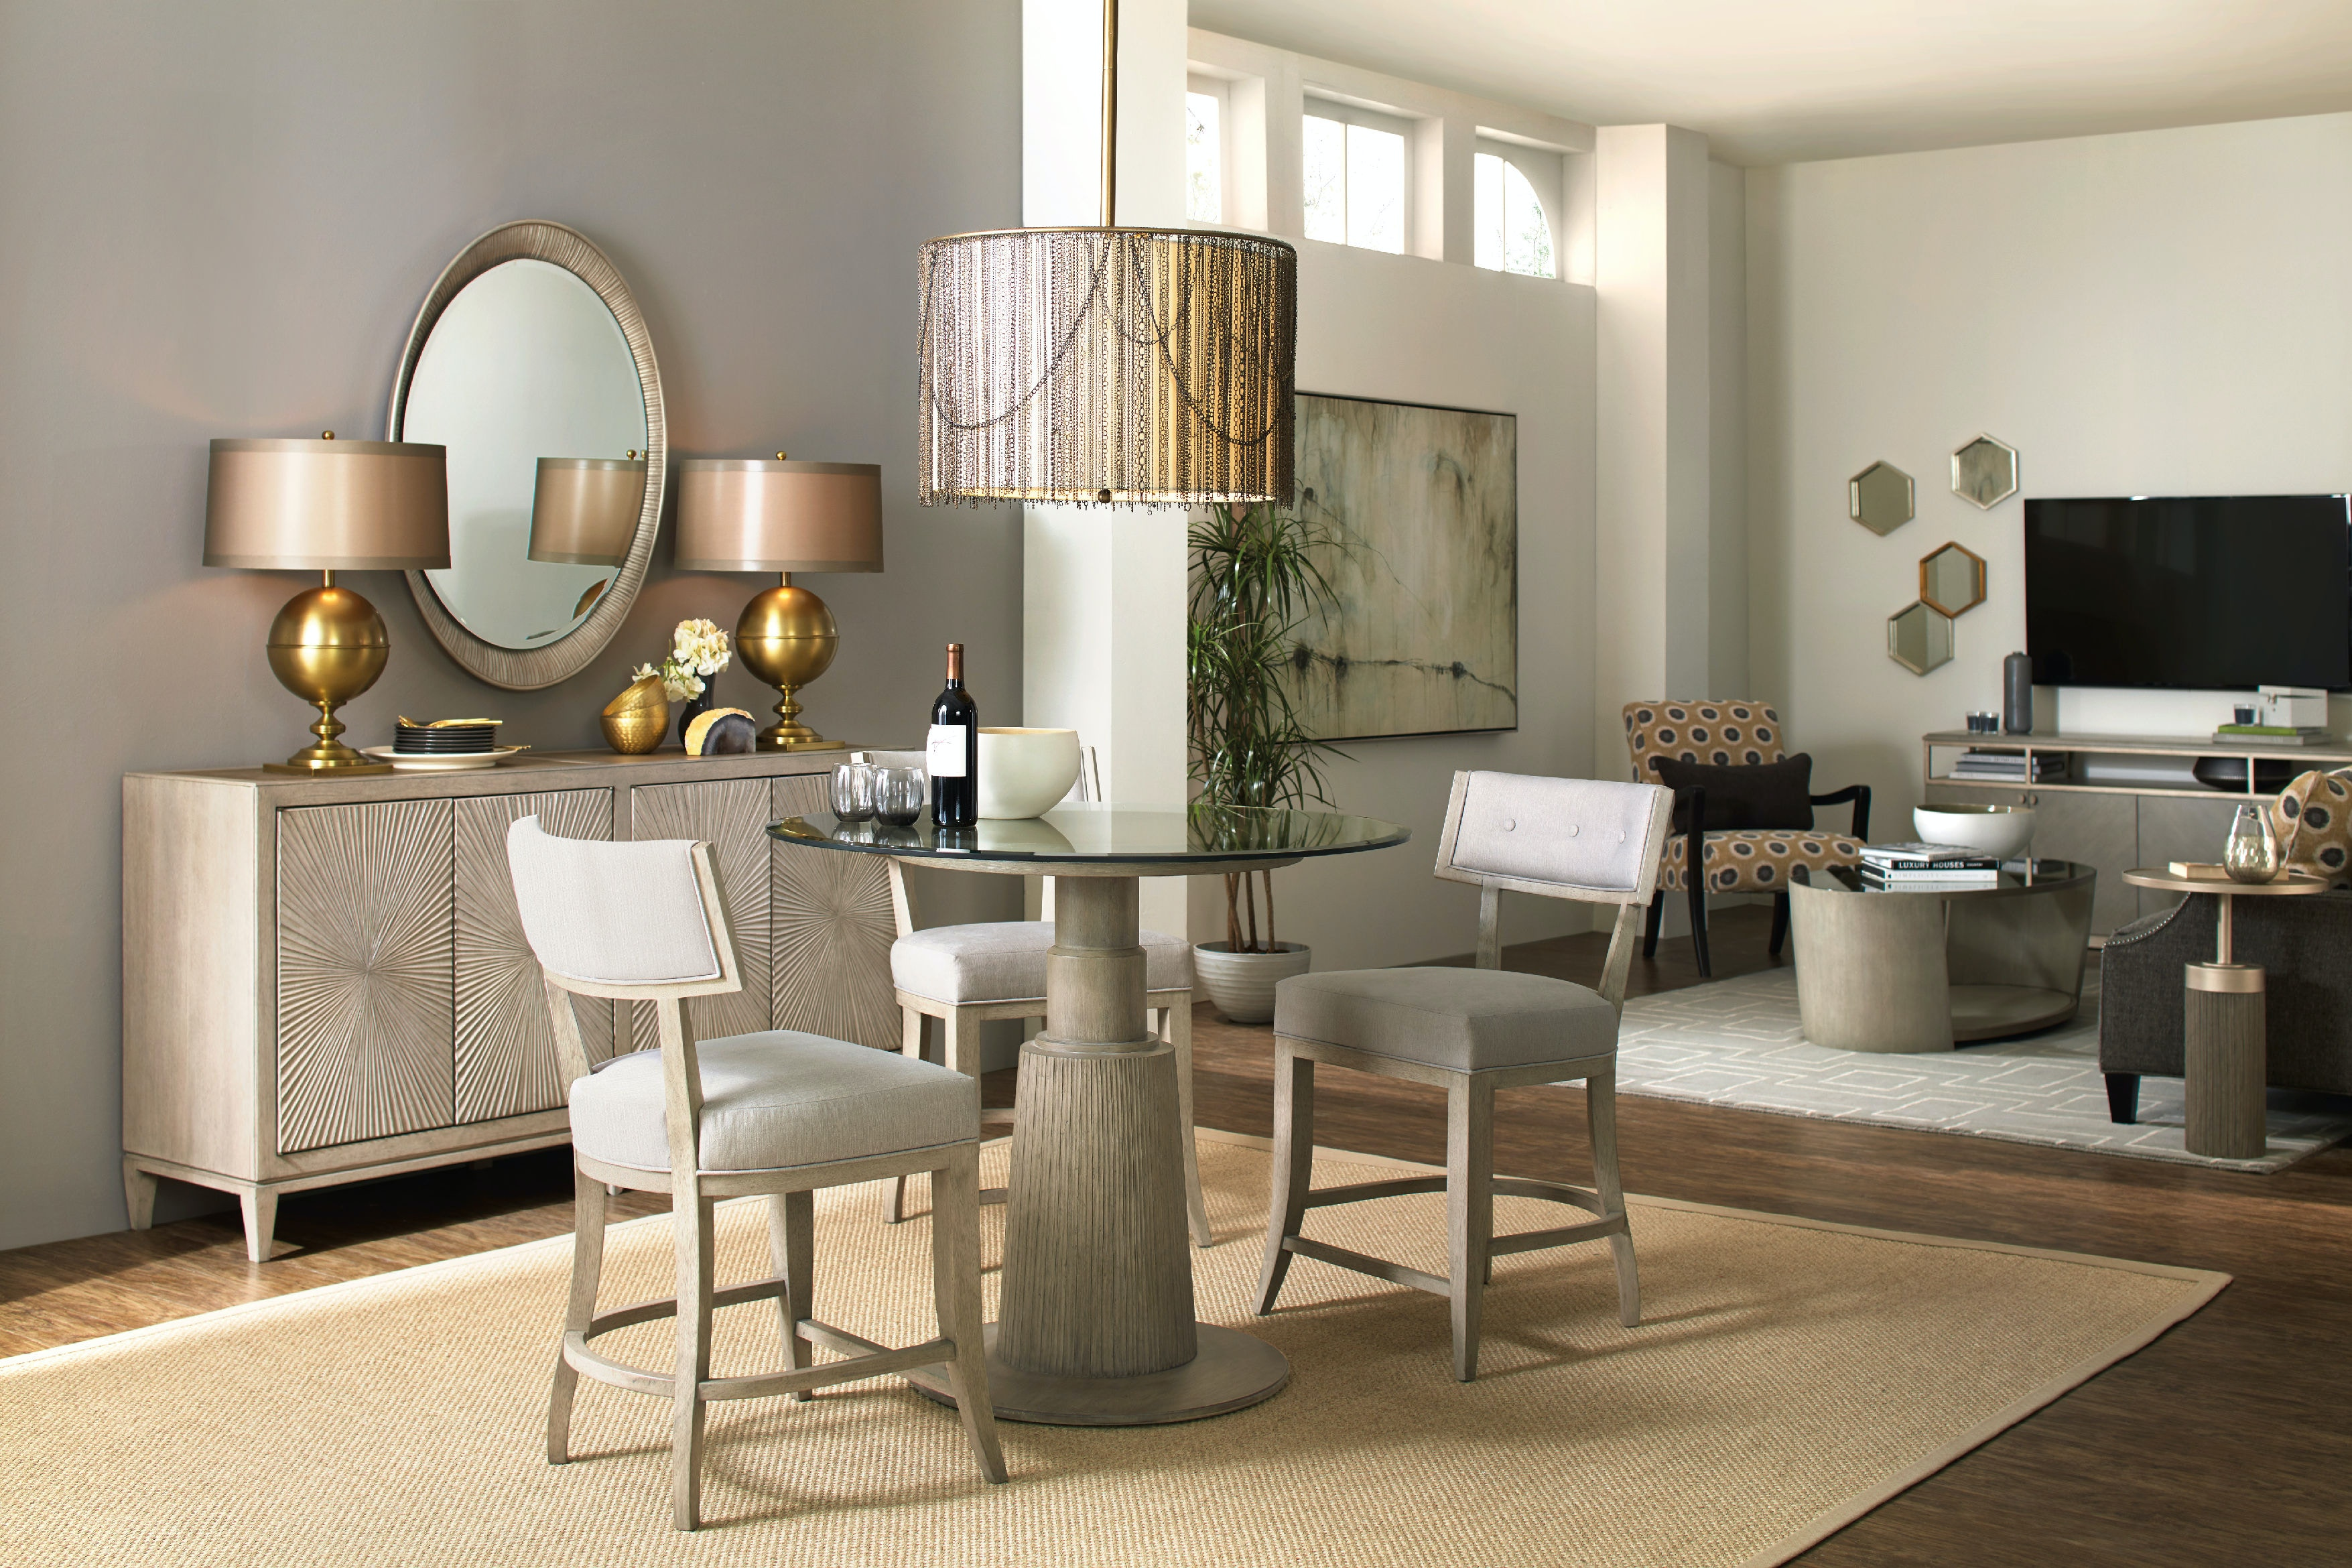 Hooker Furniture Elixir Round Dining Table 42in 5990 75203 42